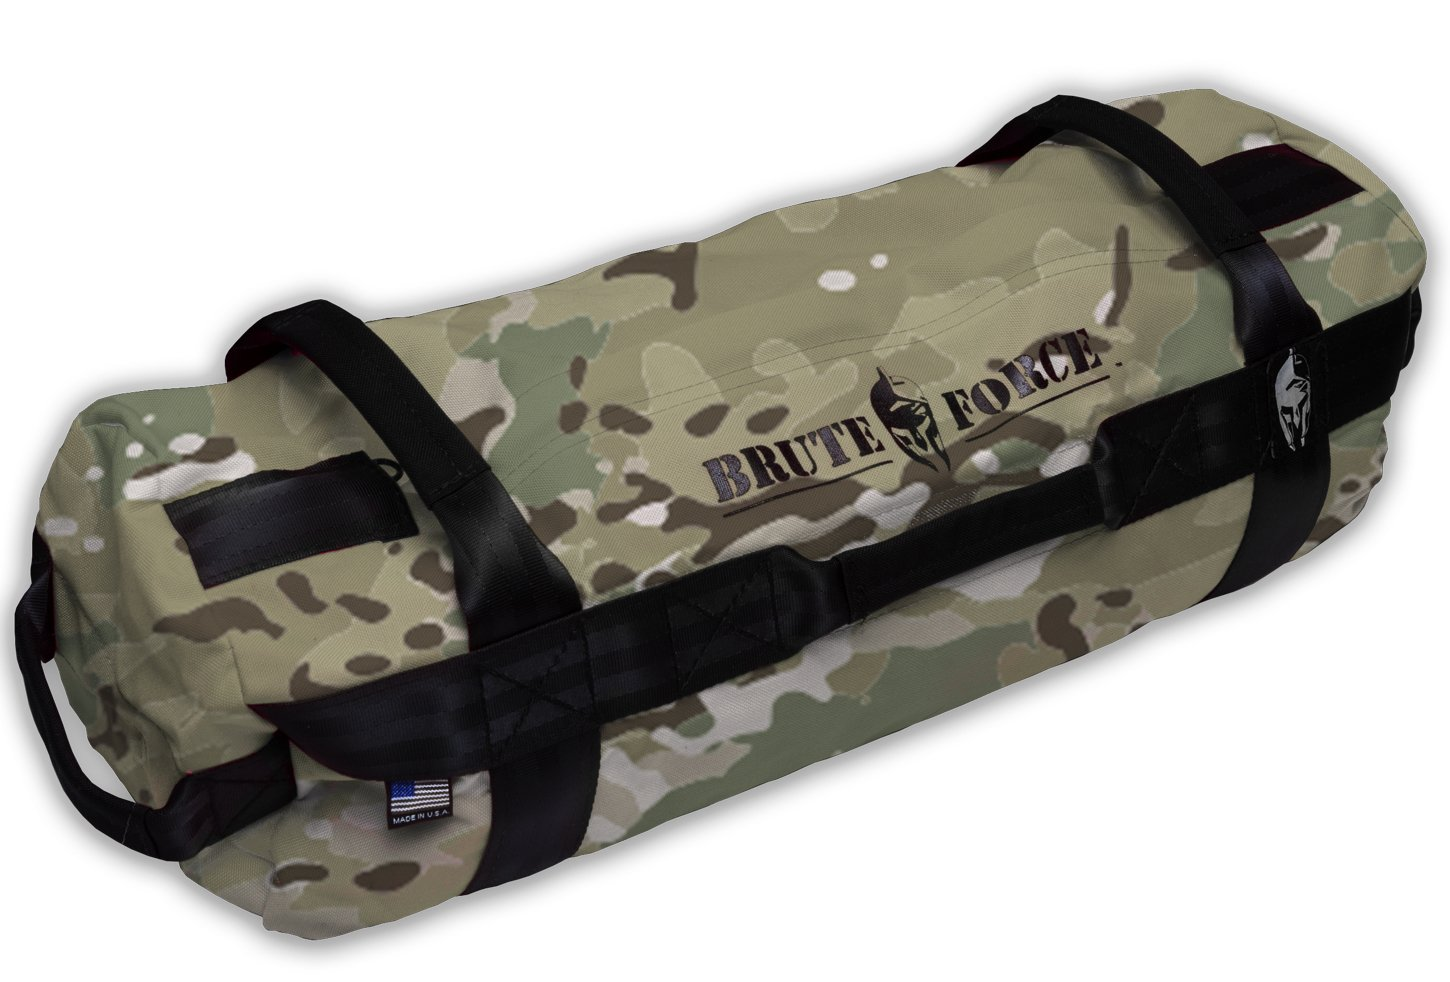 Brute Force Sandbags - Athlete Sandbag - Camo - Athletic Elite XL Sandbag Training Workout Bag Heavy Duty Sandbag Physical Therapy Sandbag